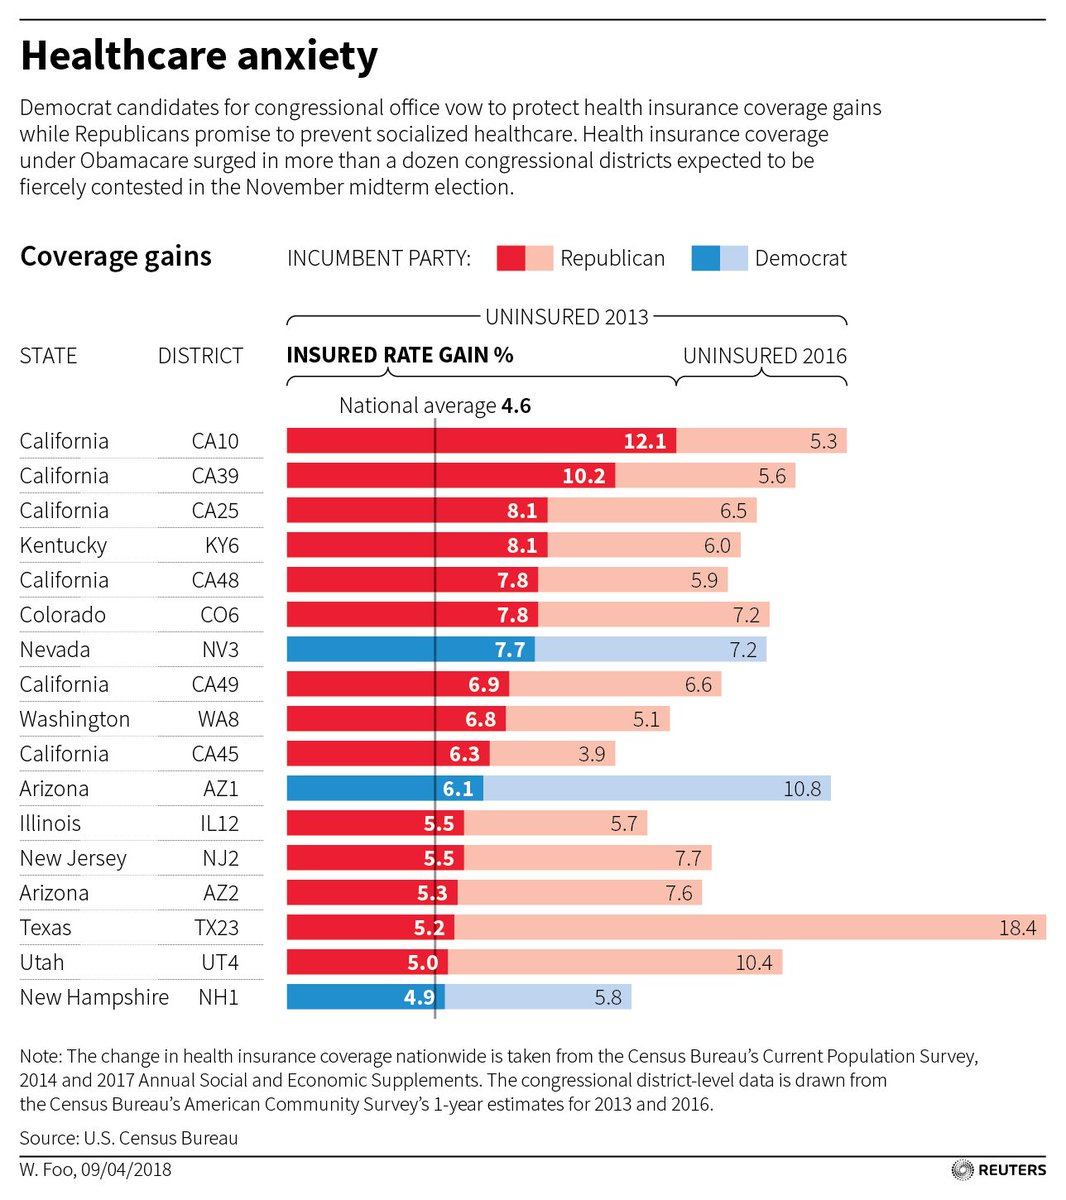 Healthcare anxieties: Insurance coverage has surged in some congressional districts